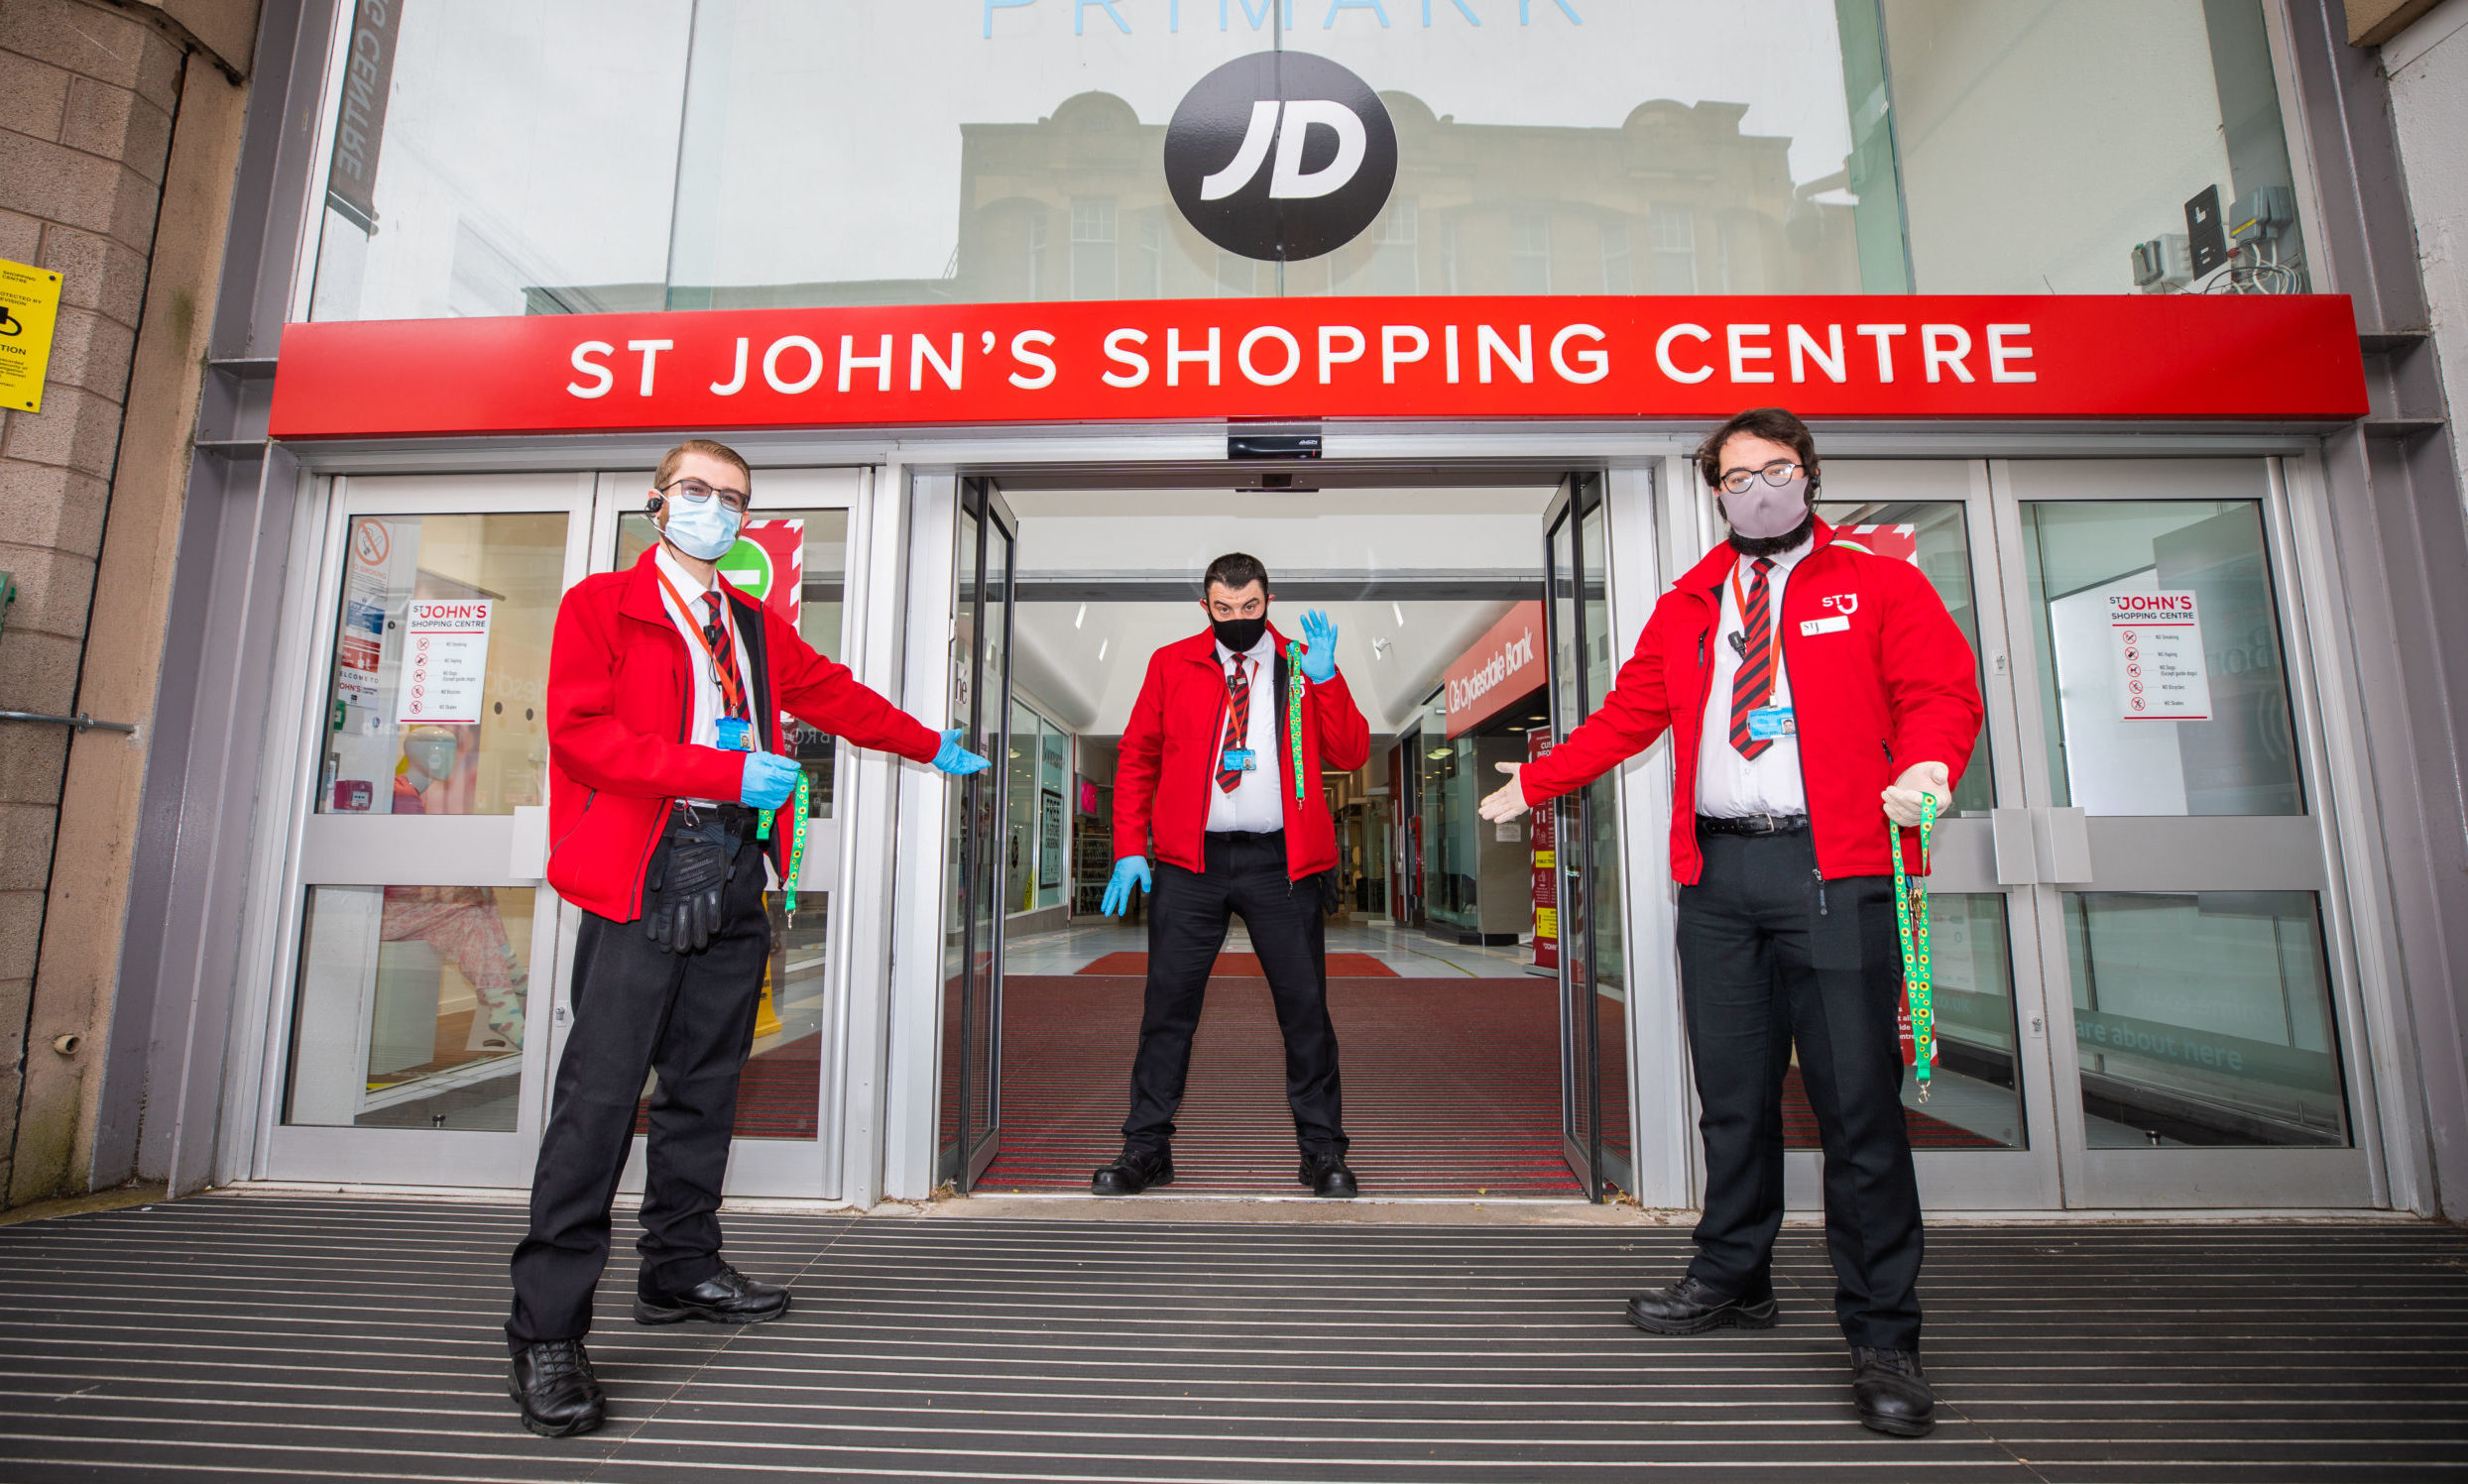 River Island is based within St Johns Shopping Centre in Perth, which  reopened in July after four months of lockdown.